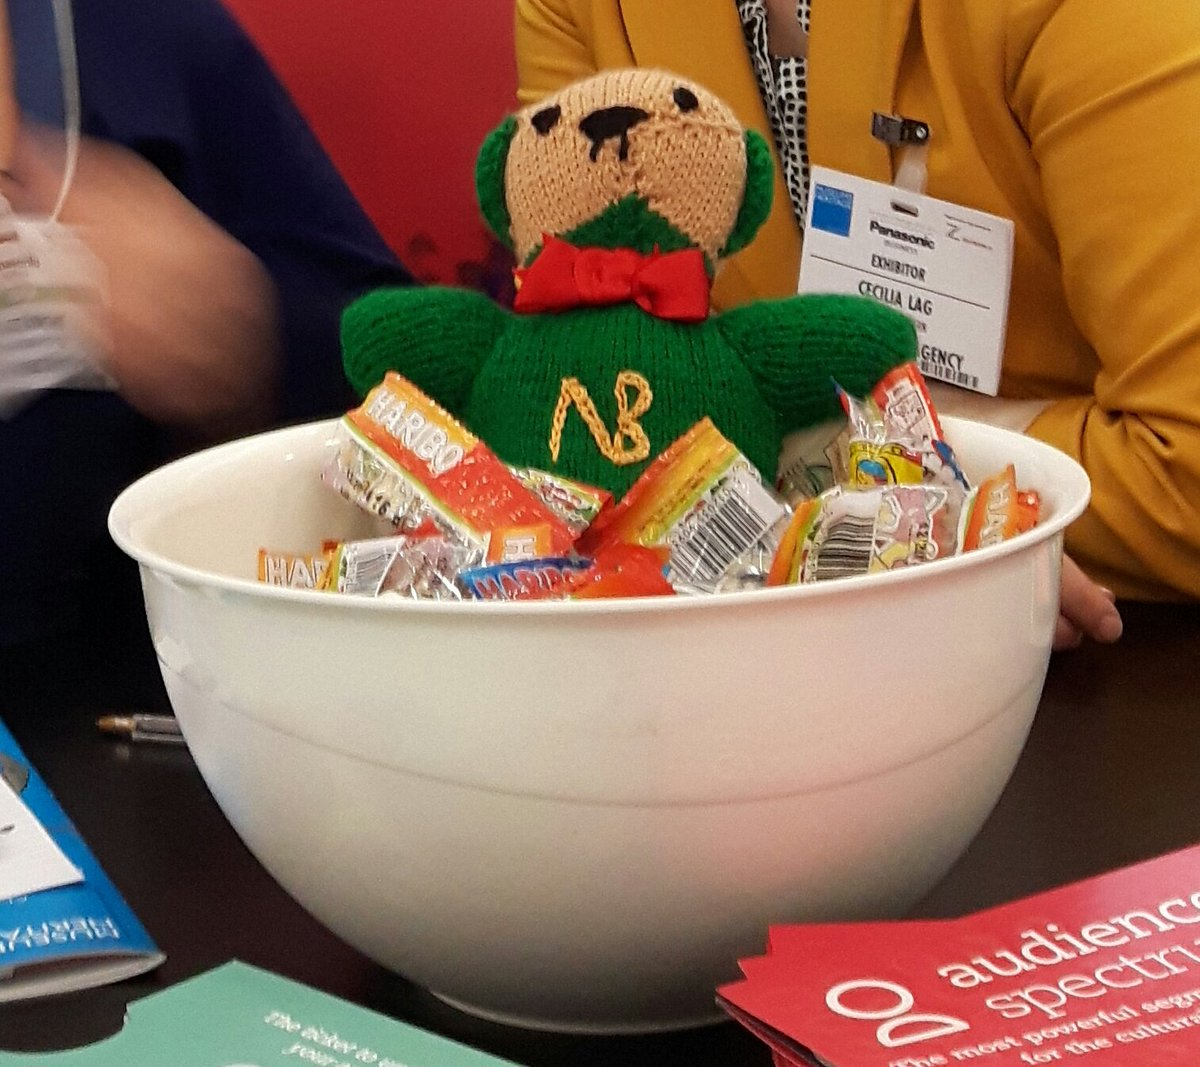 @CoffinWorks Here is #NewmanBear swimming in haribo. He was Very Happy about it. https://t.co/ud1RiDSjd3